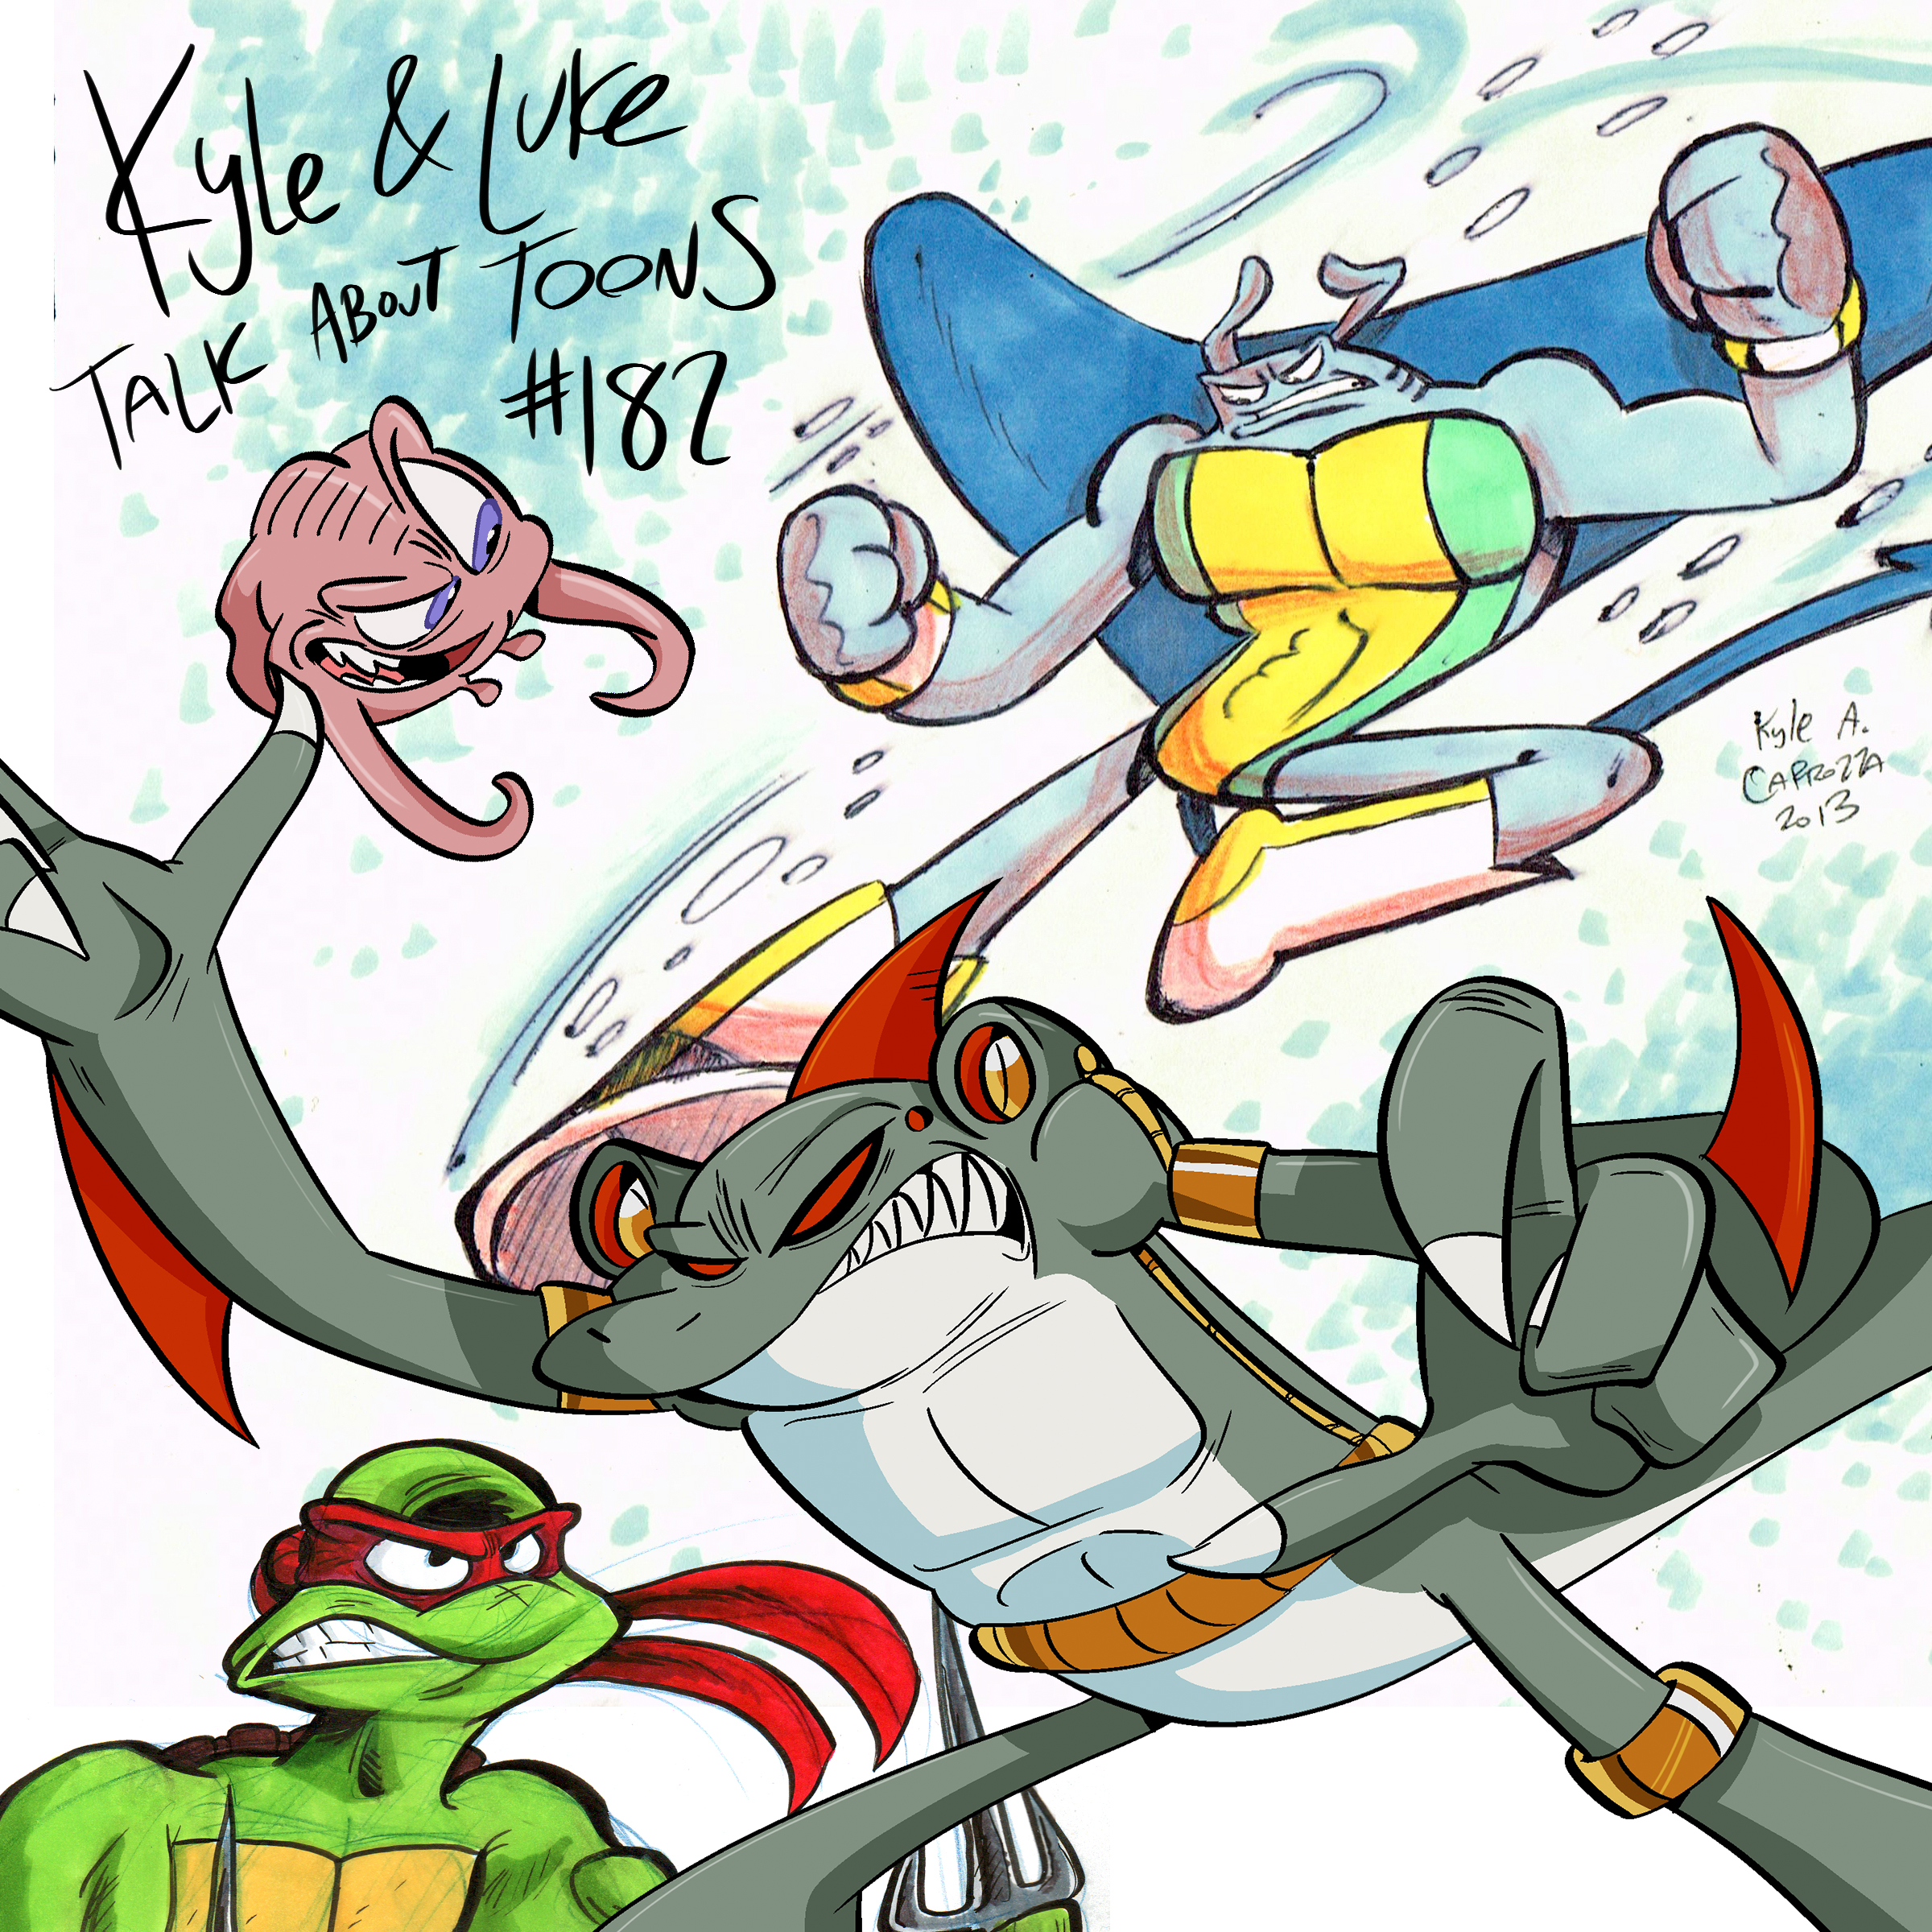 Kyle and Luke Talk About Toons #182: Sometimes All You Need is a Future Shark